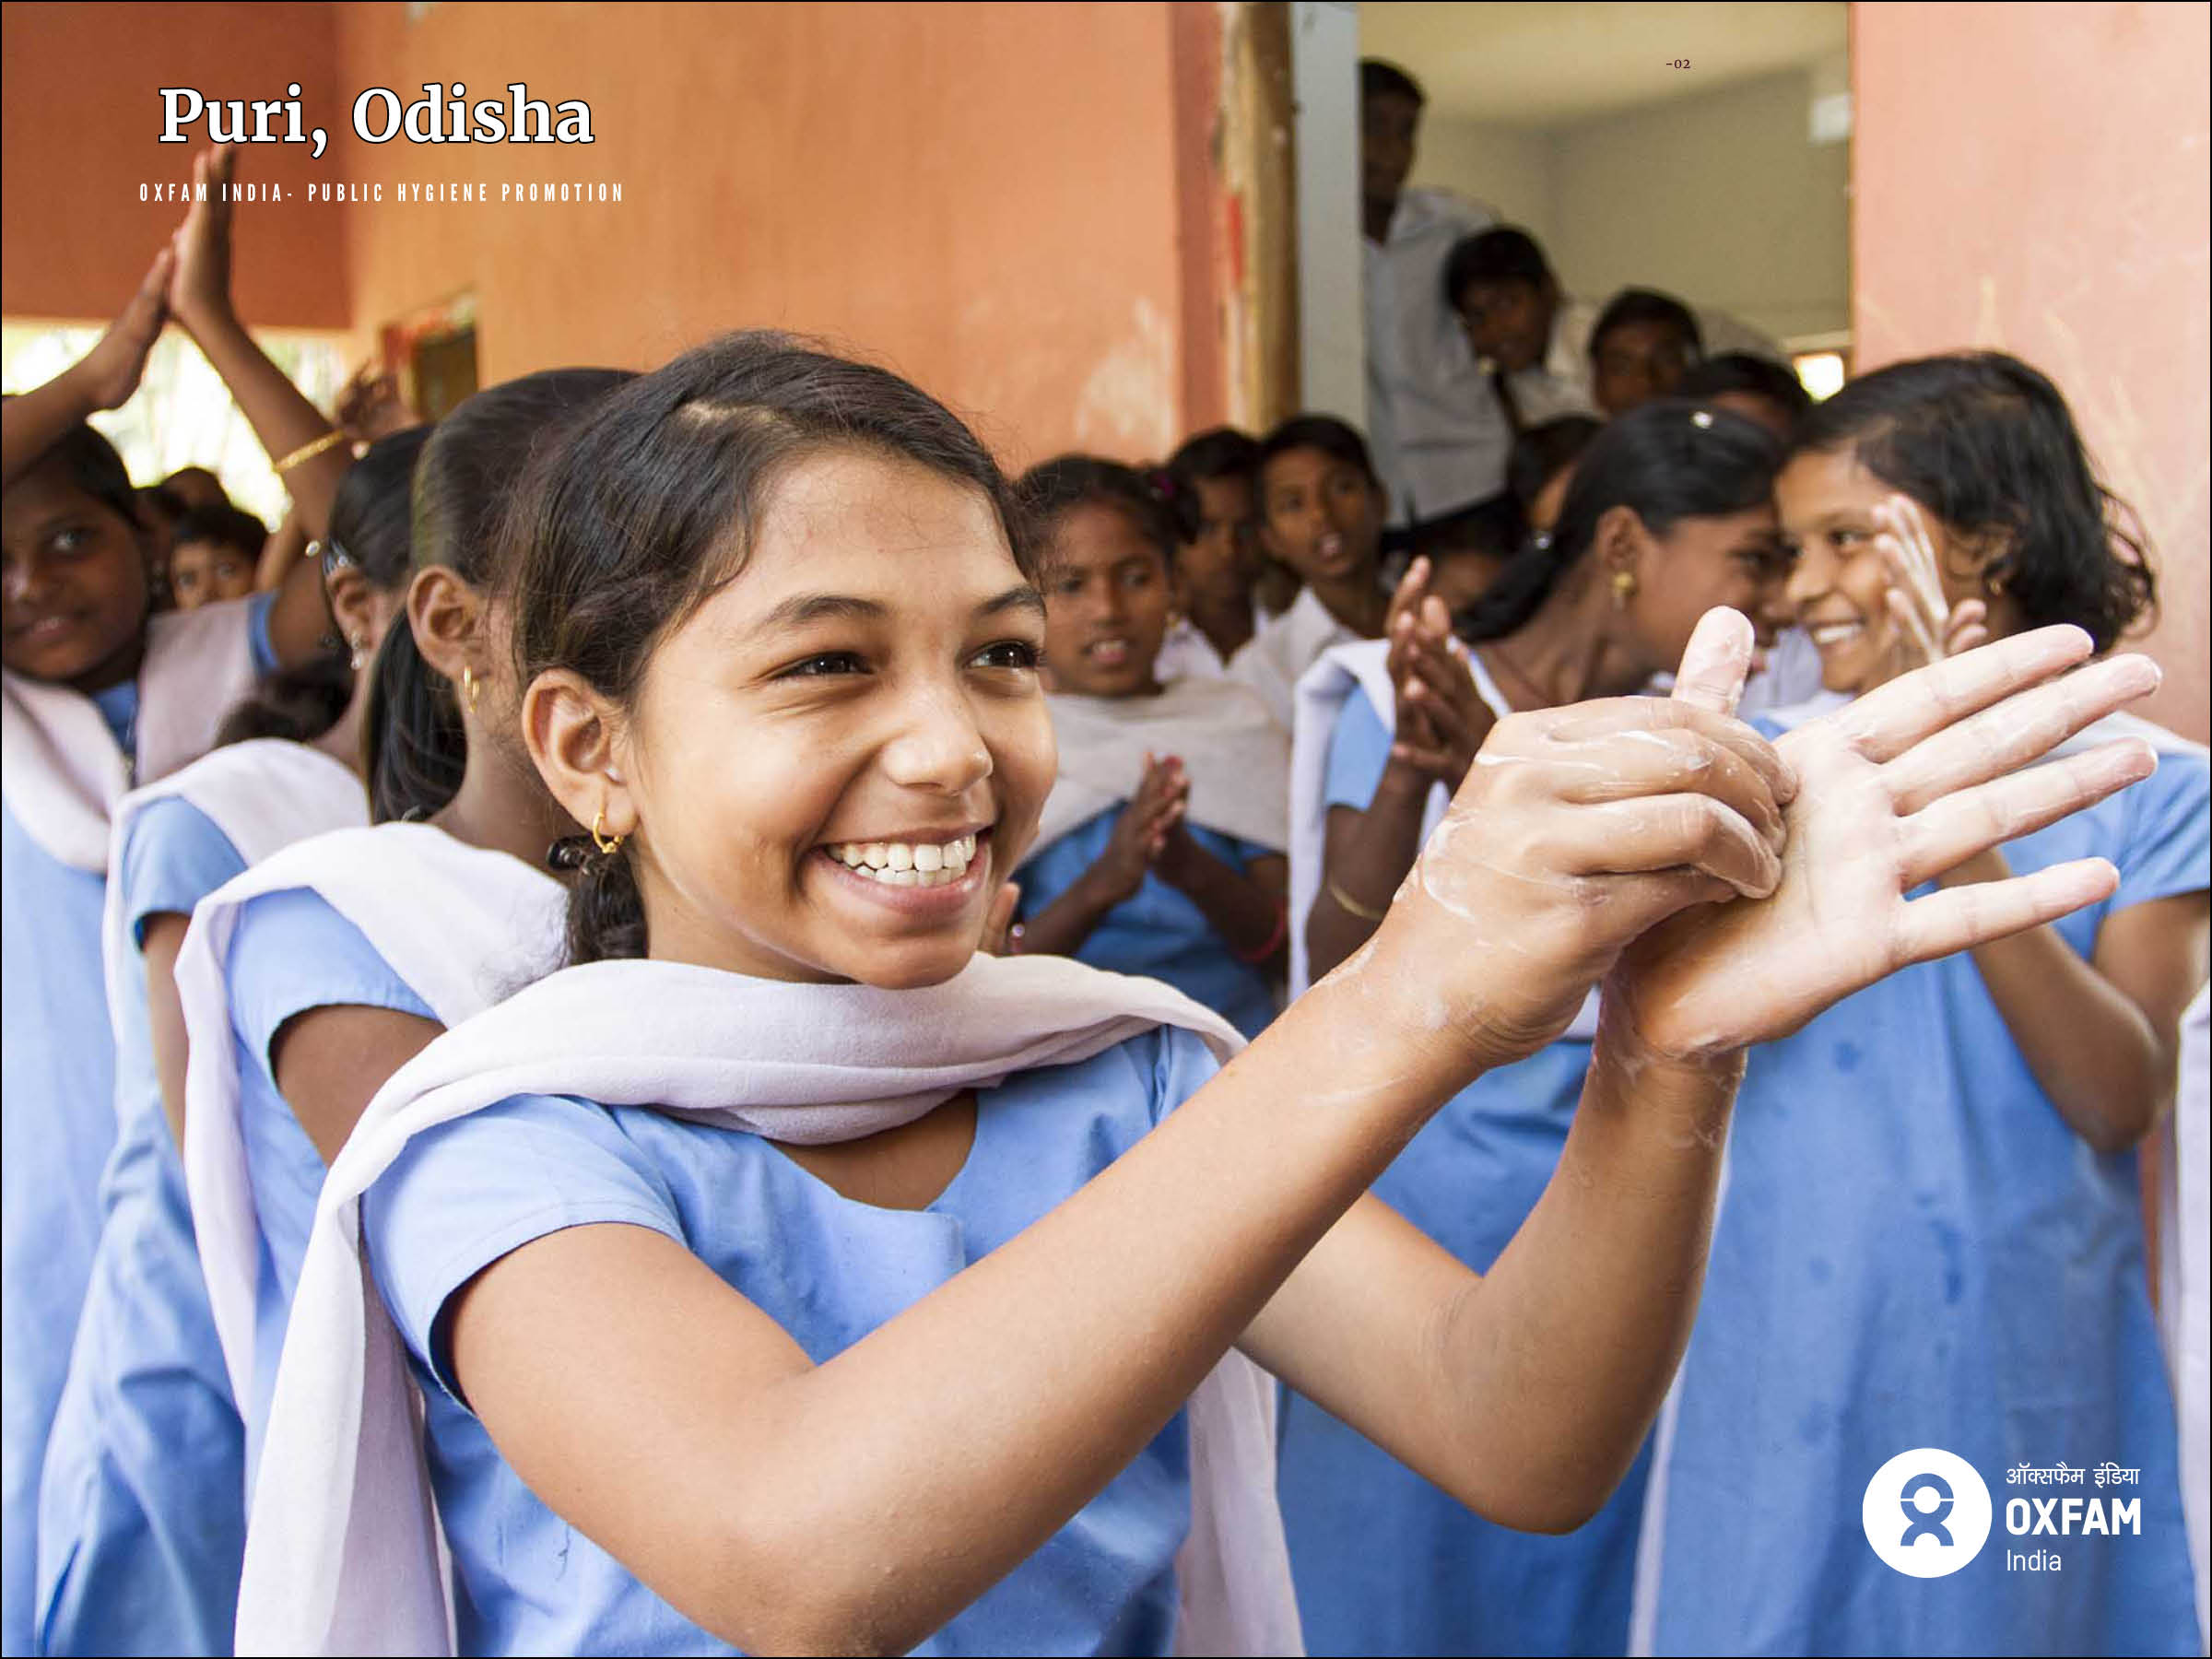 Oxfam India - Cyclone Phailin Response Programme:  Students at Gopinathpur School, Puri, engage with the Oxfam supported hygiene promotion campaign